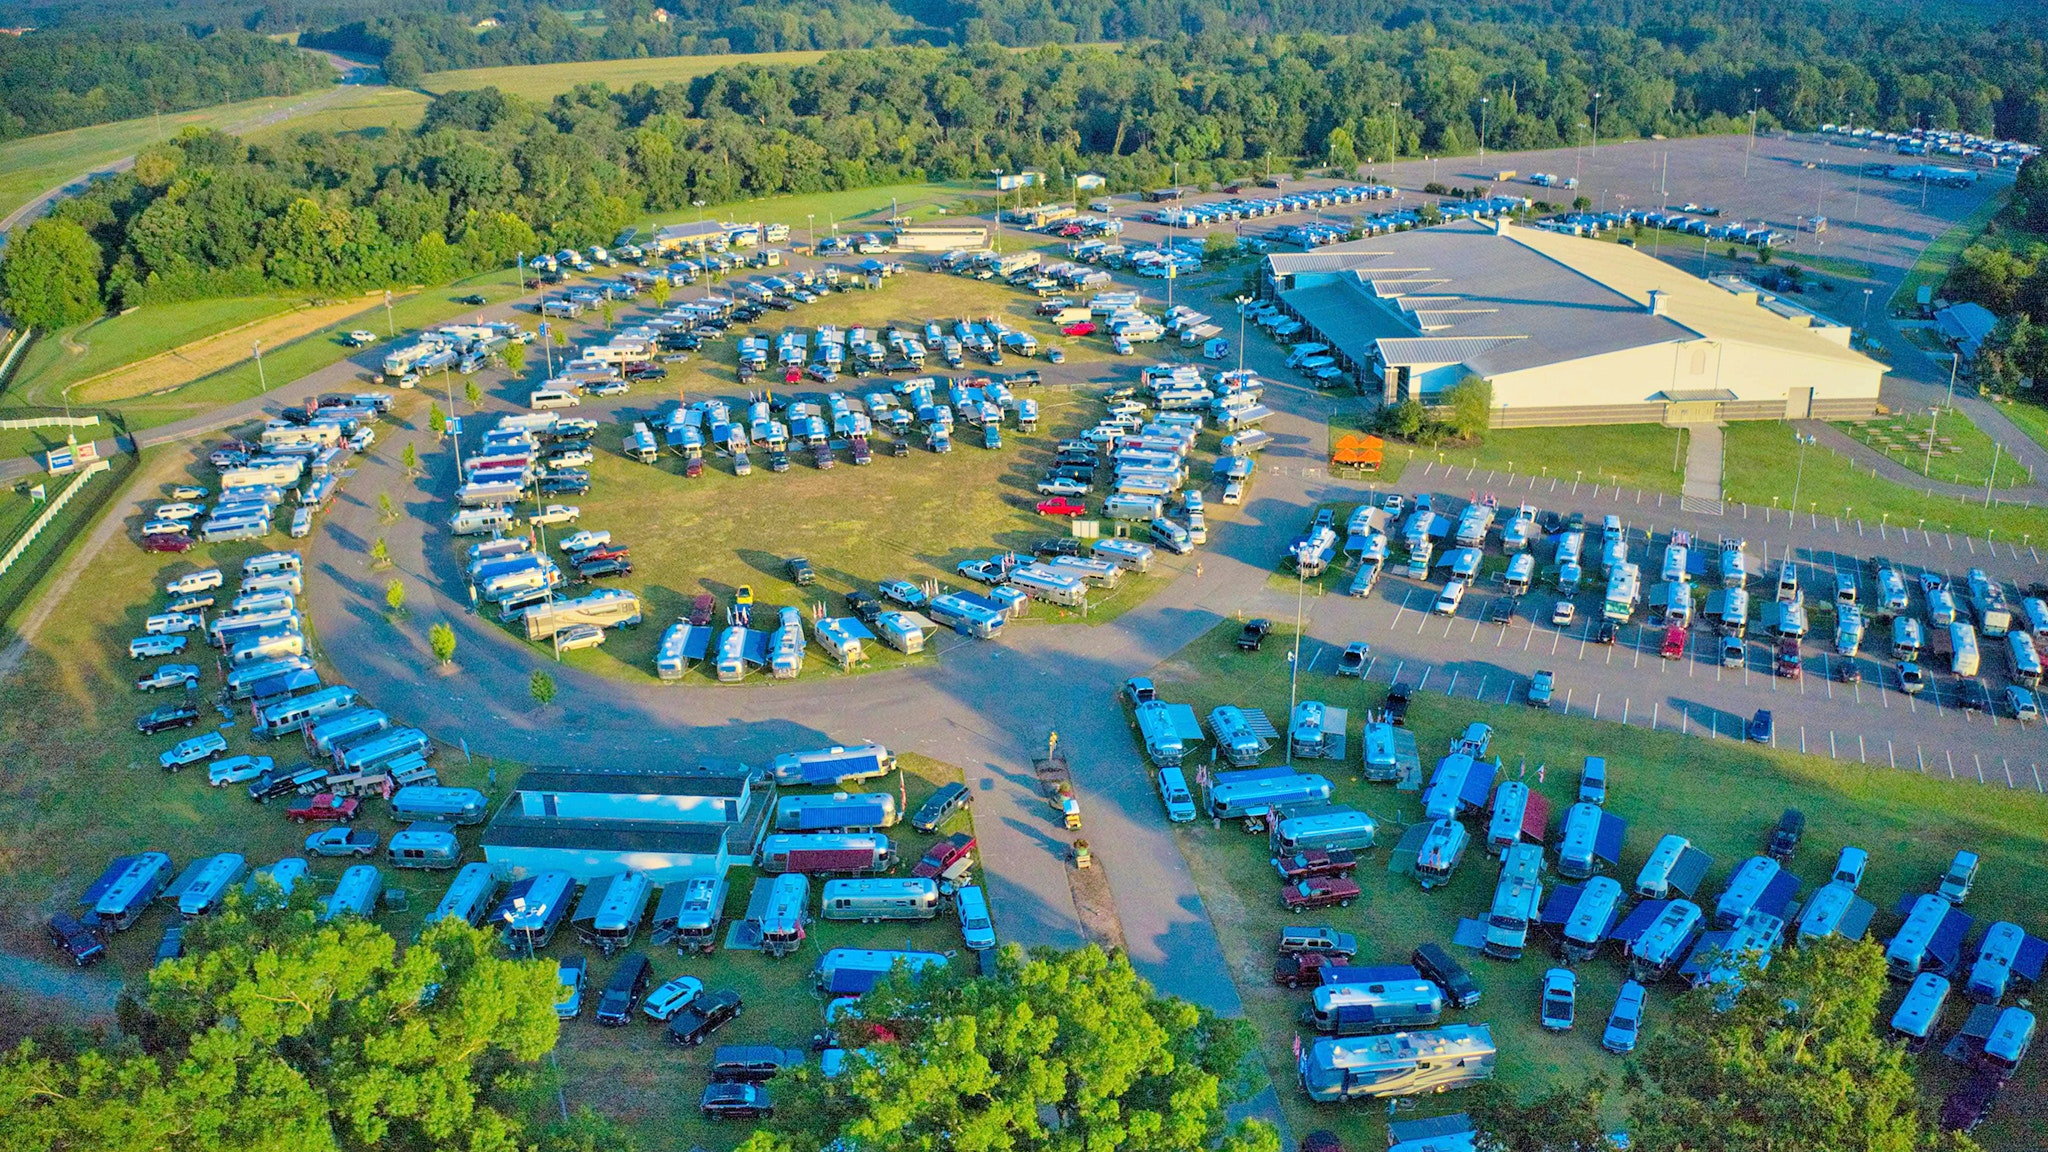 WBCCi-Rally-2019-Drone-Shot-Blog-Feature-Hero